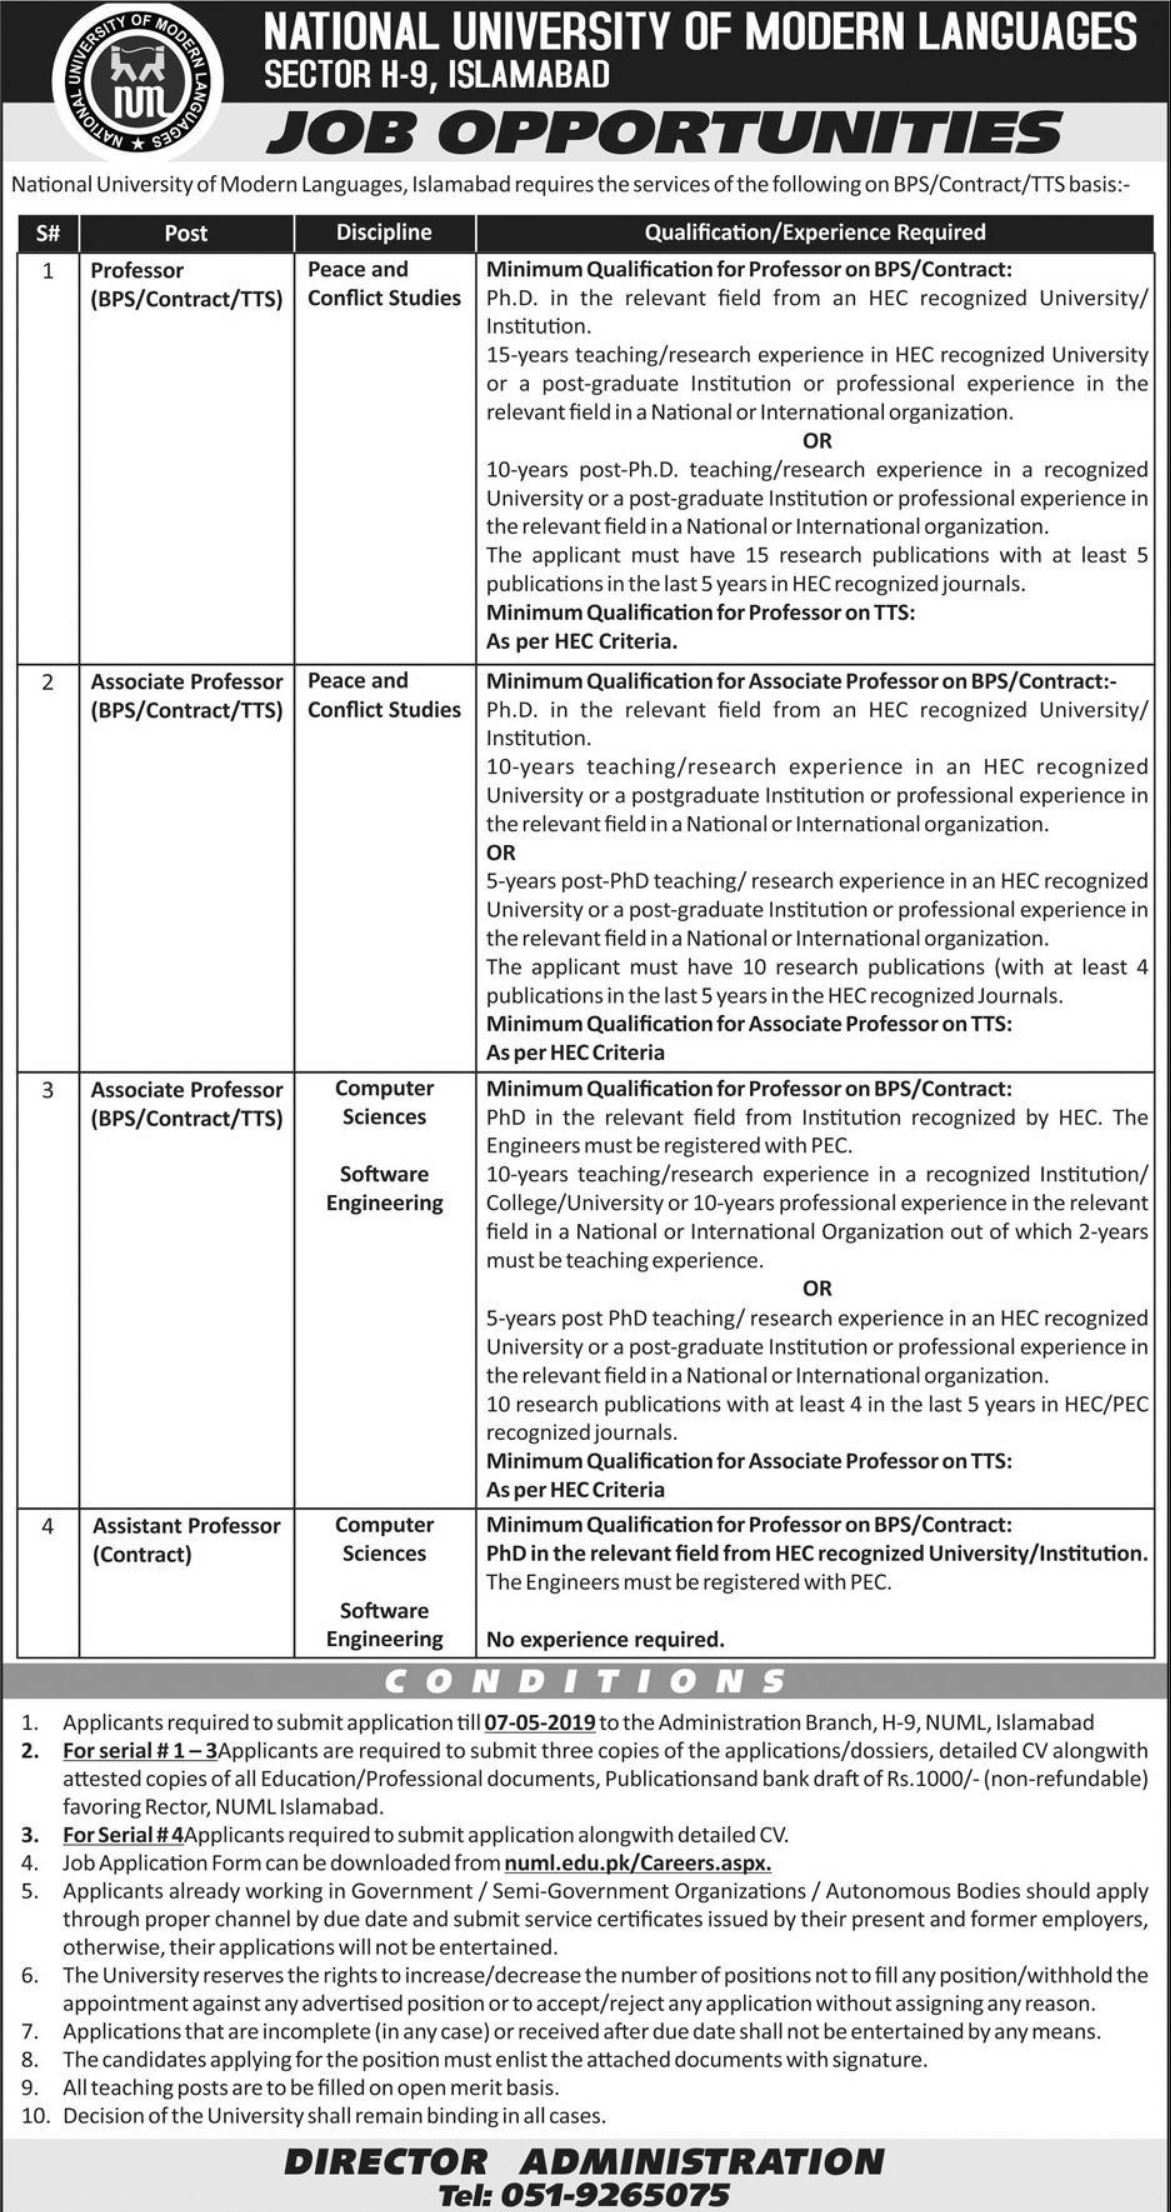 National University of Modern Languages NUML Islamabad Jobs 2019